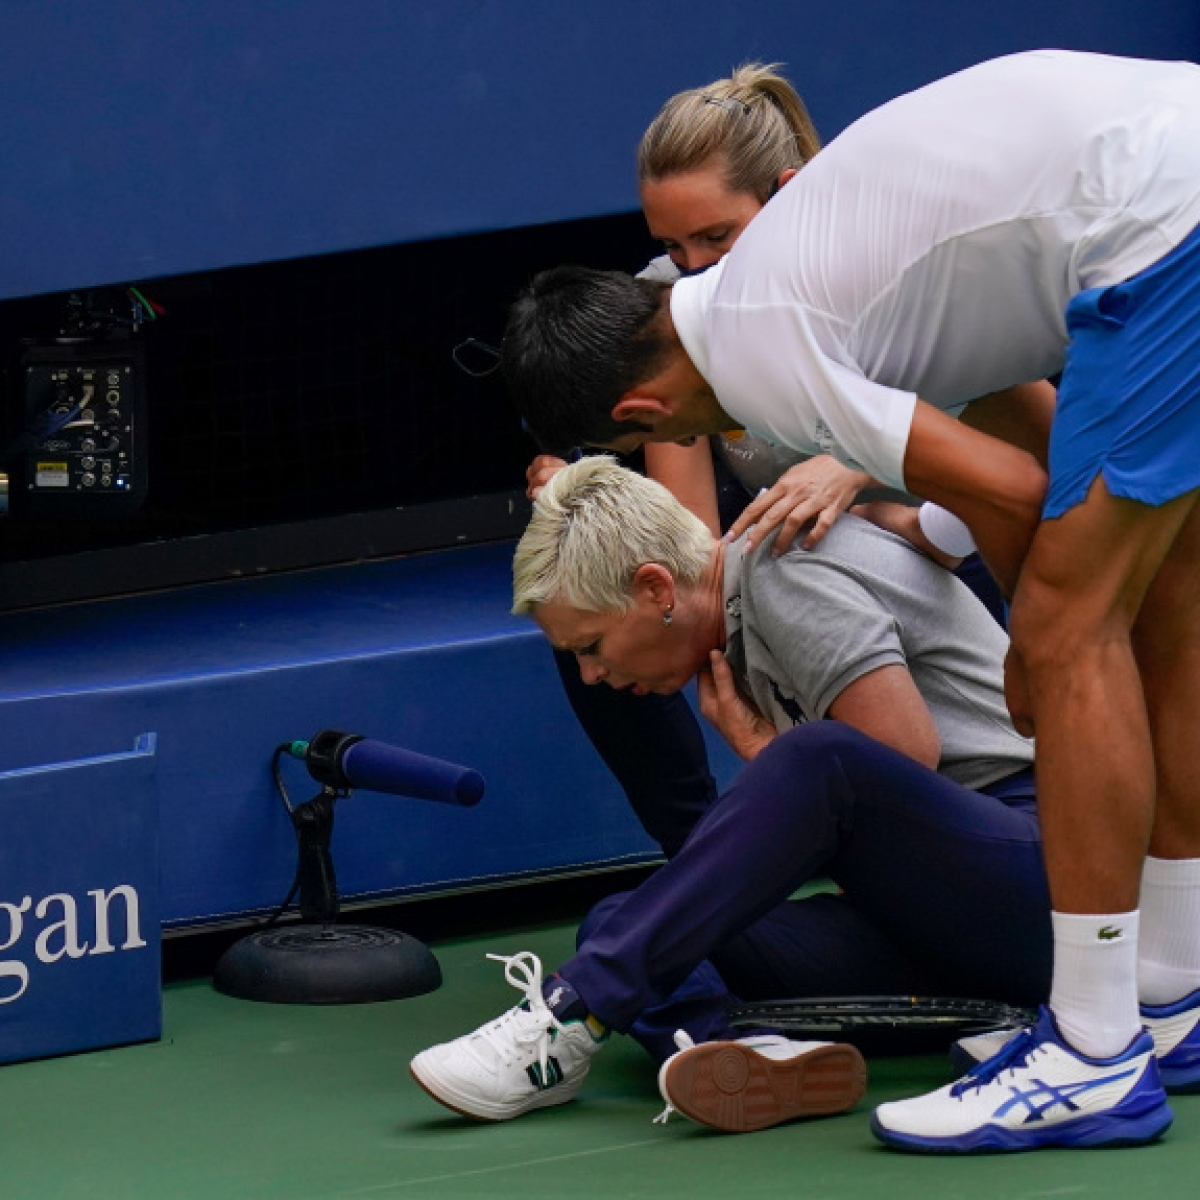 FPJ Explains: Why Novak Djokovic was disqualified at US Open 2020